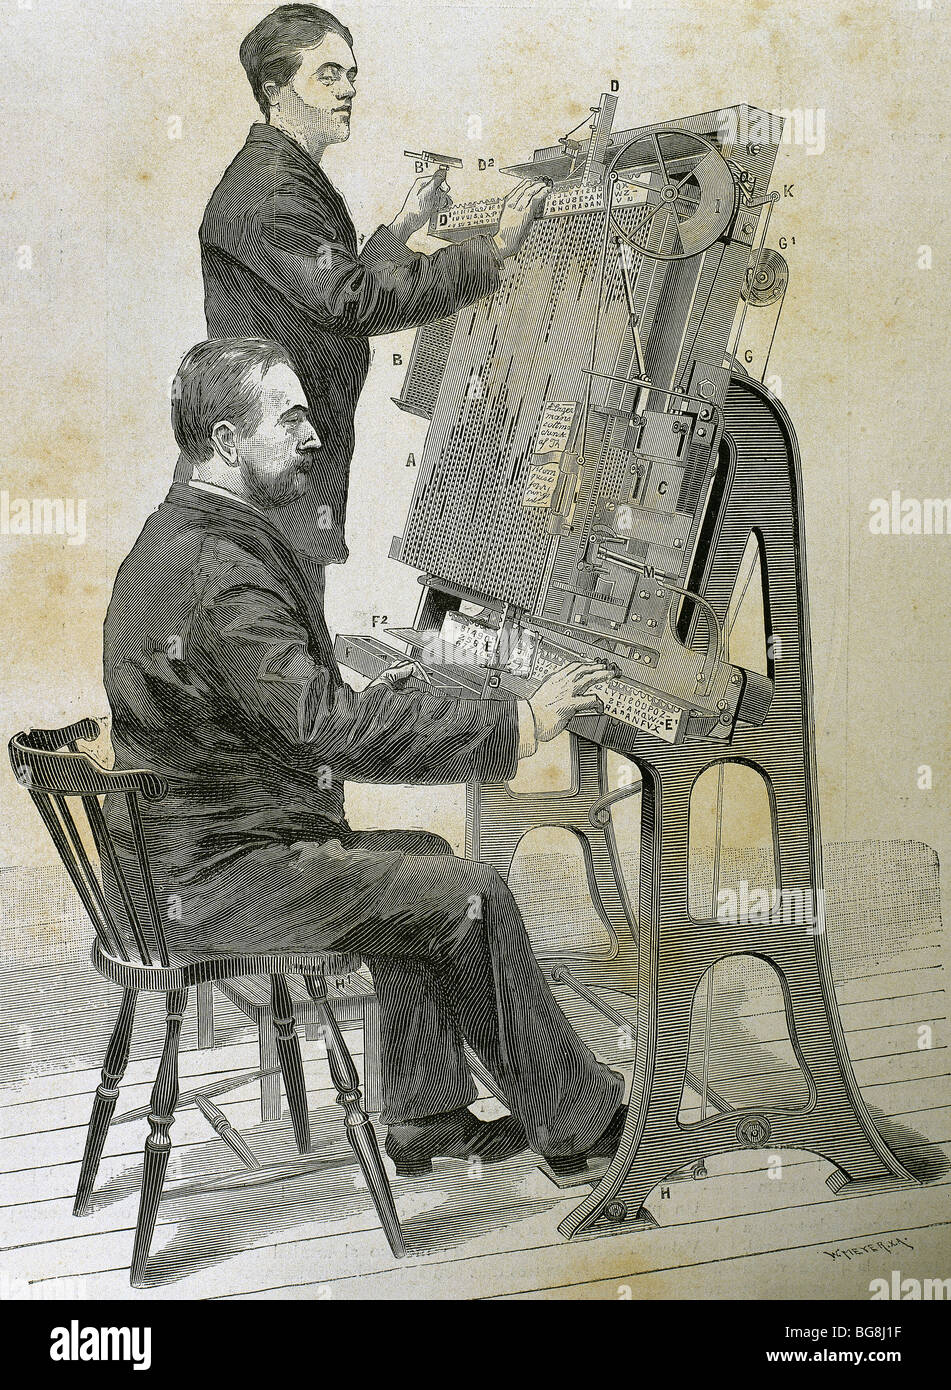 Typographic composing new machine. Engraving by W. Meyer for 'Artistic Illustration', 1885. - Stock Image